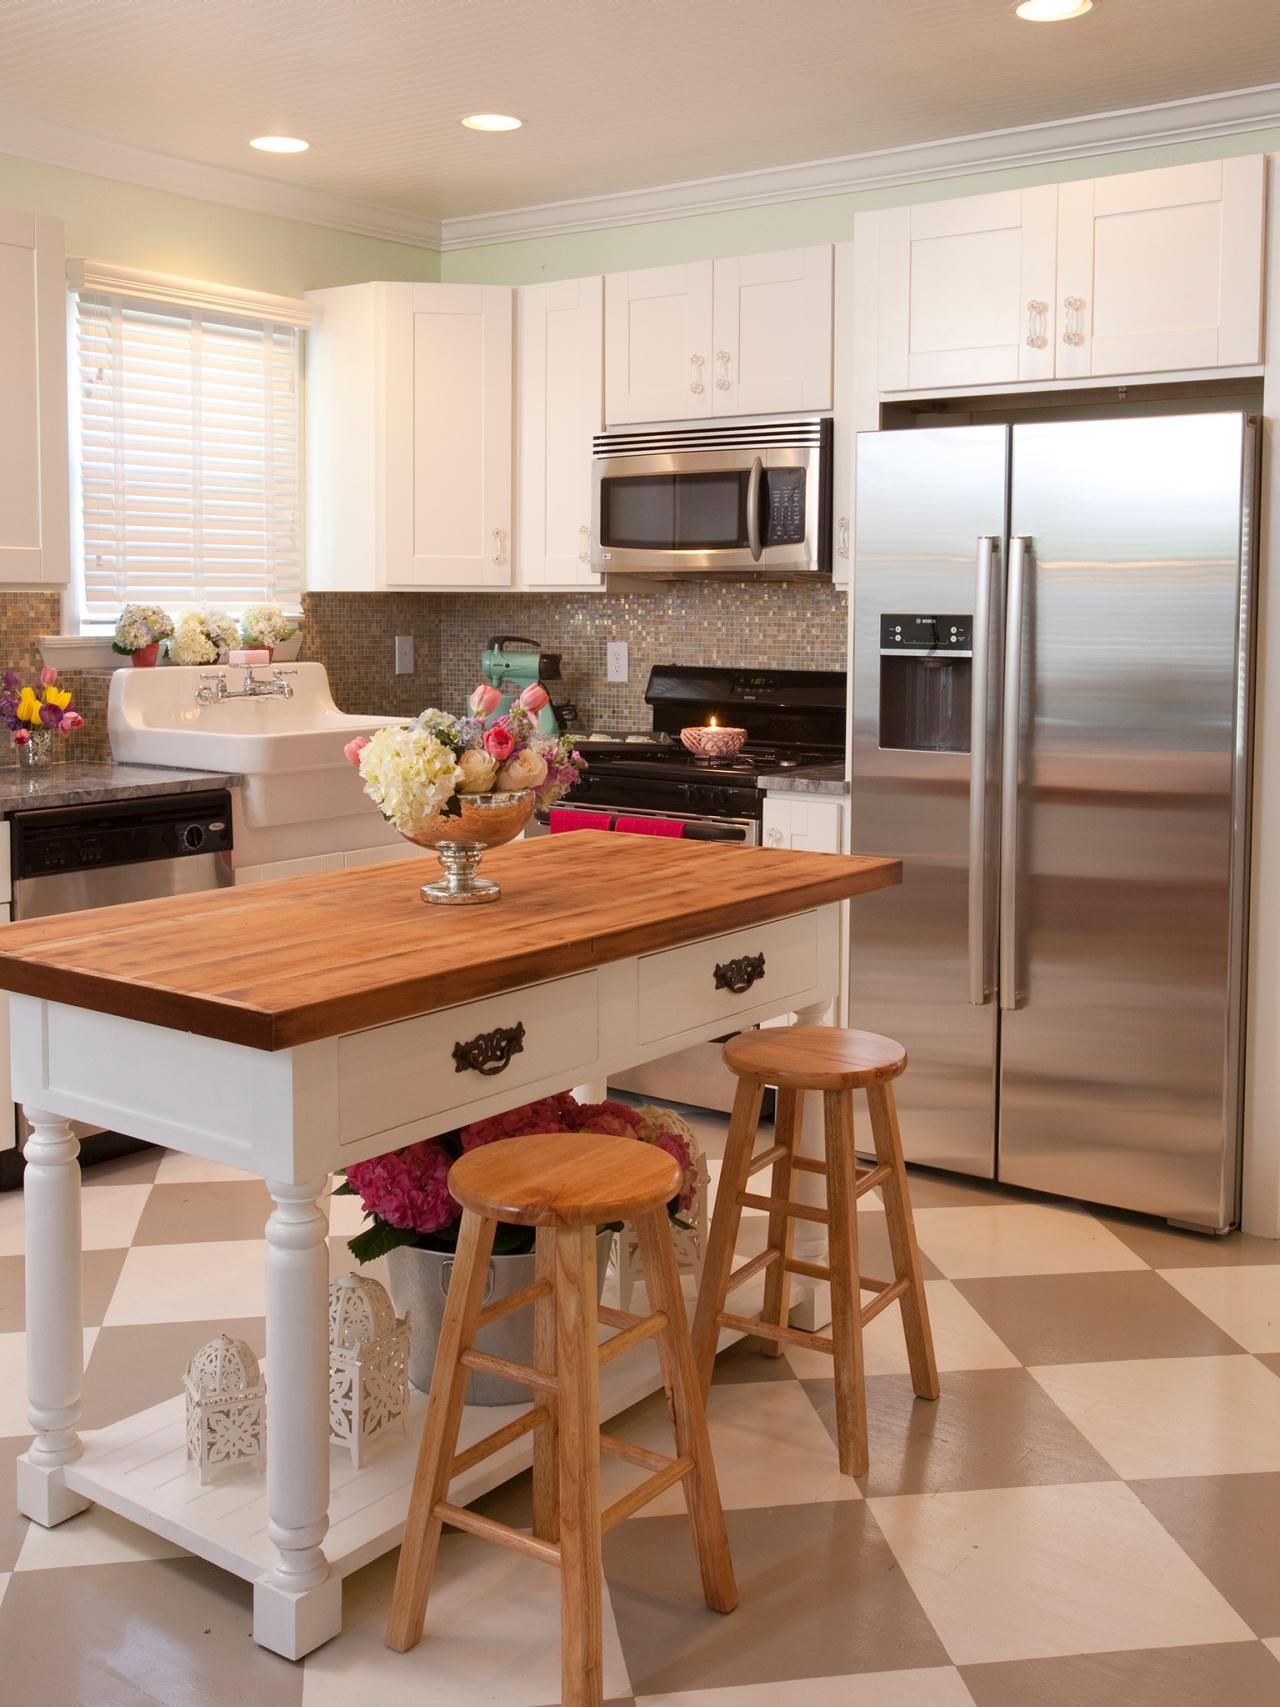 Fullsize Of Open Kitchen Designs With Islands